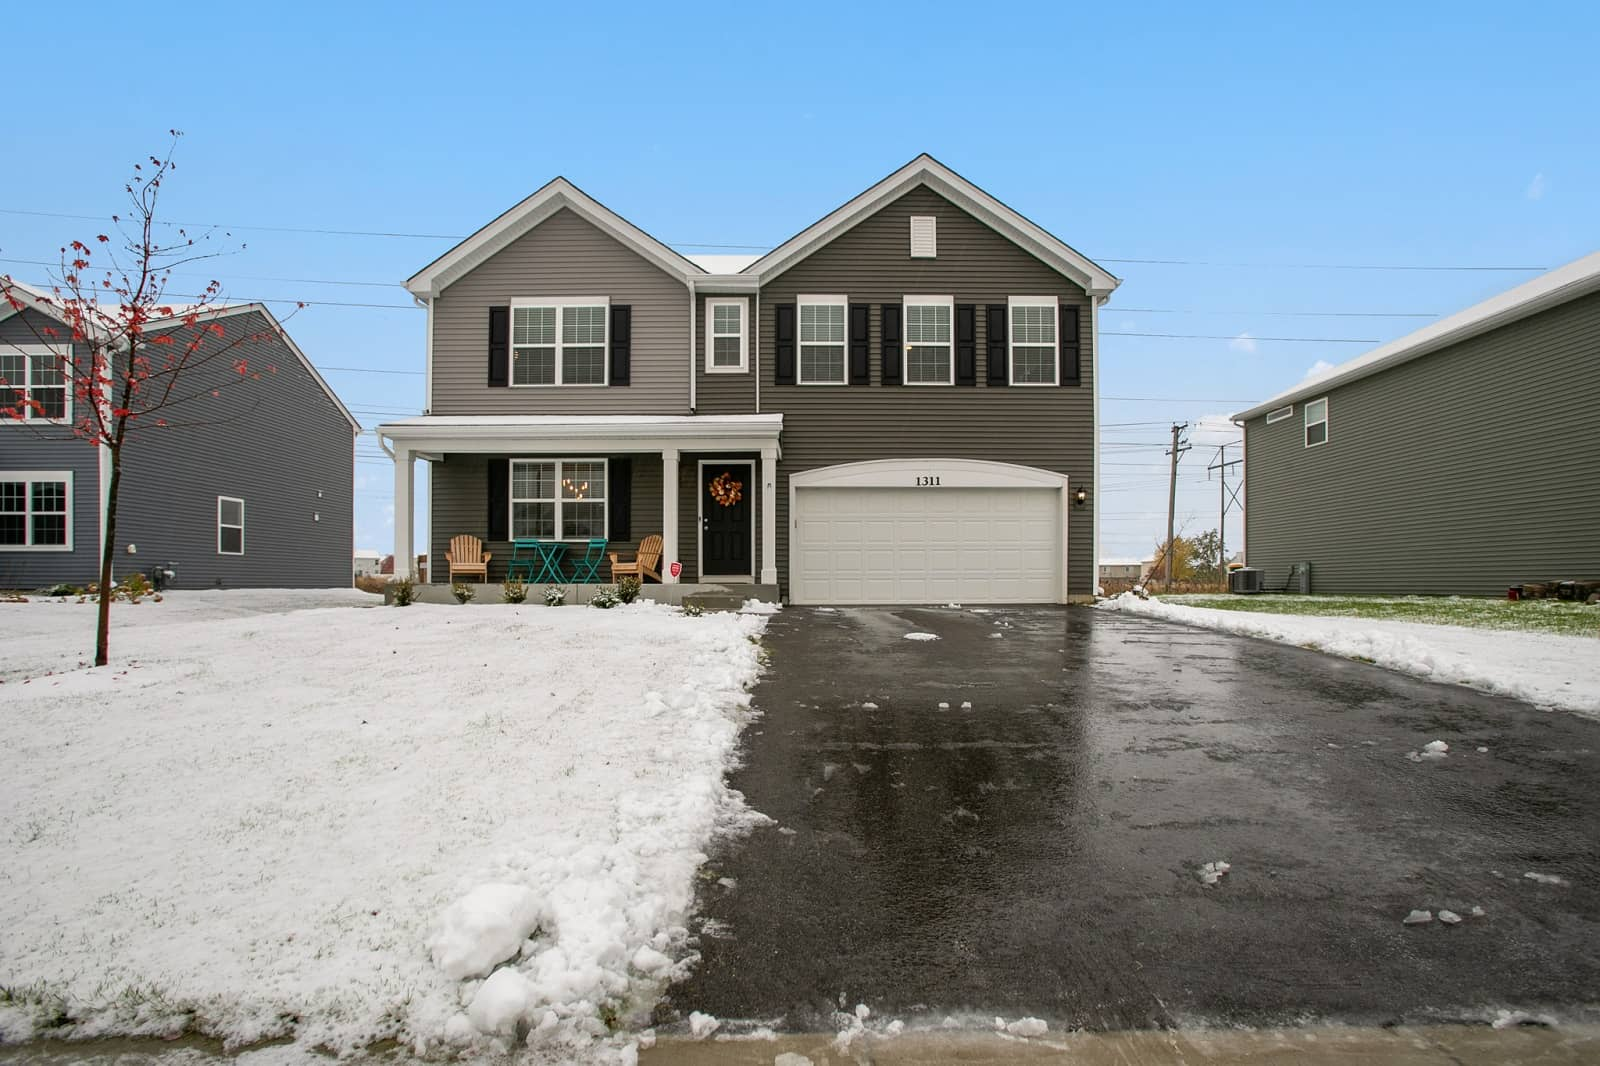 Real Estate Photography in Joliet - IL - USA - Front View